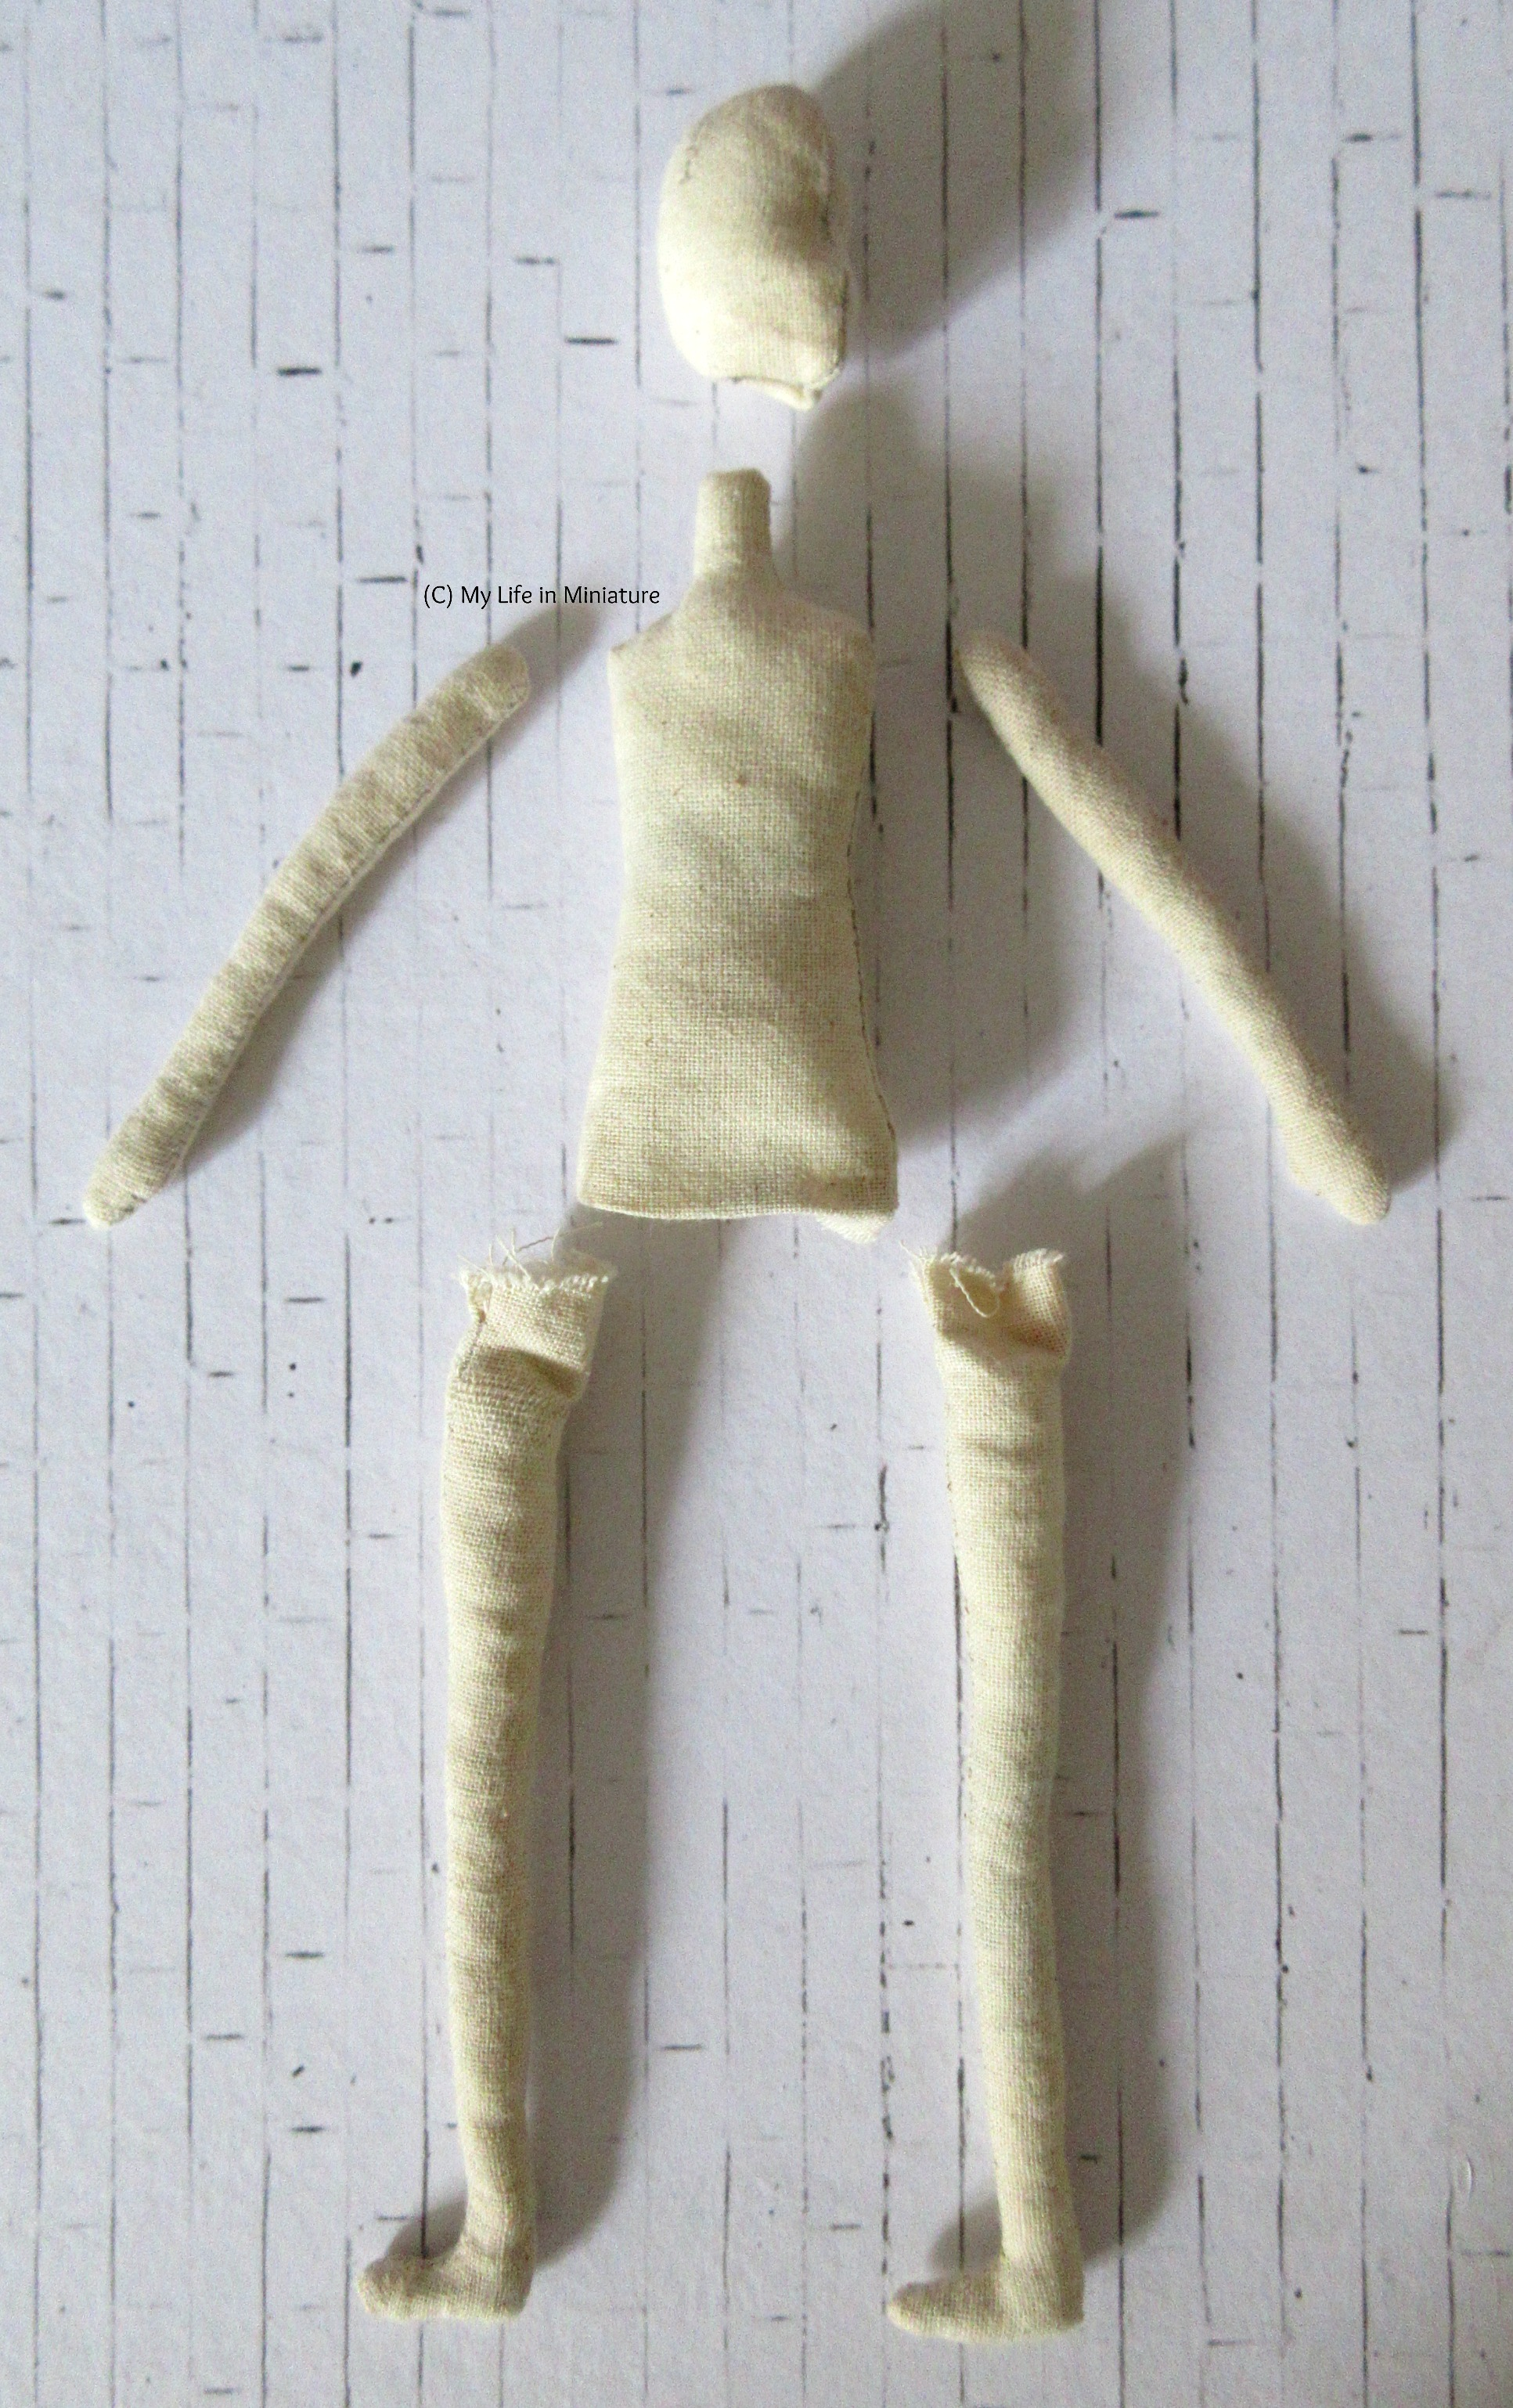 All the completed parts to a muslin doll are laid out on a white brick background, roughly in position to make a doll.